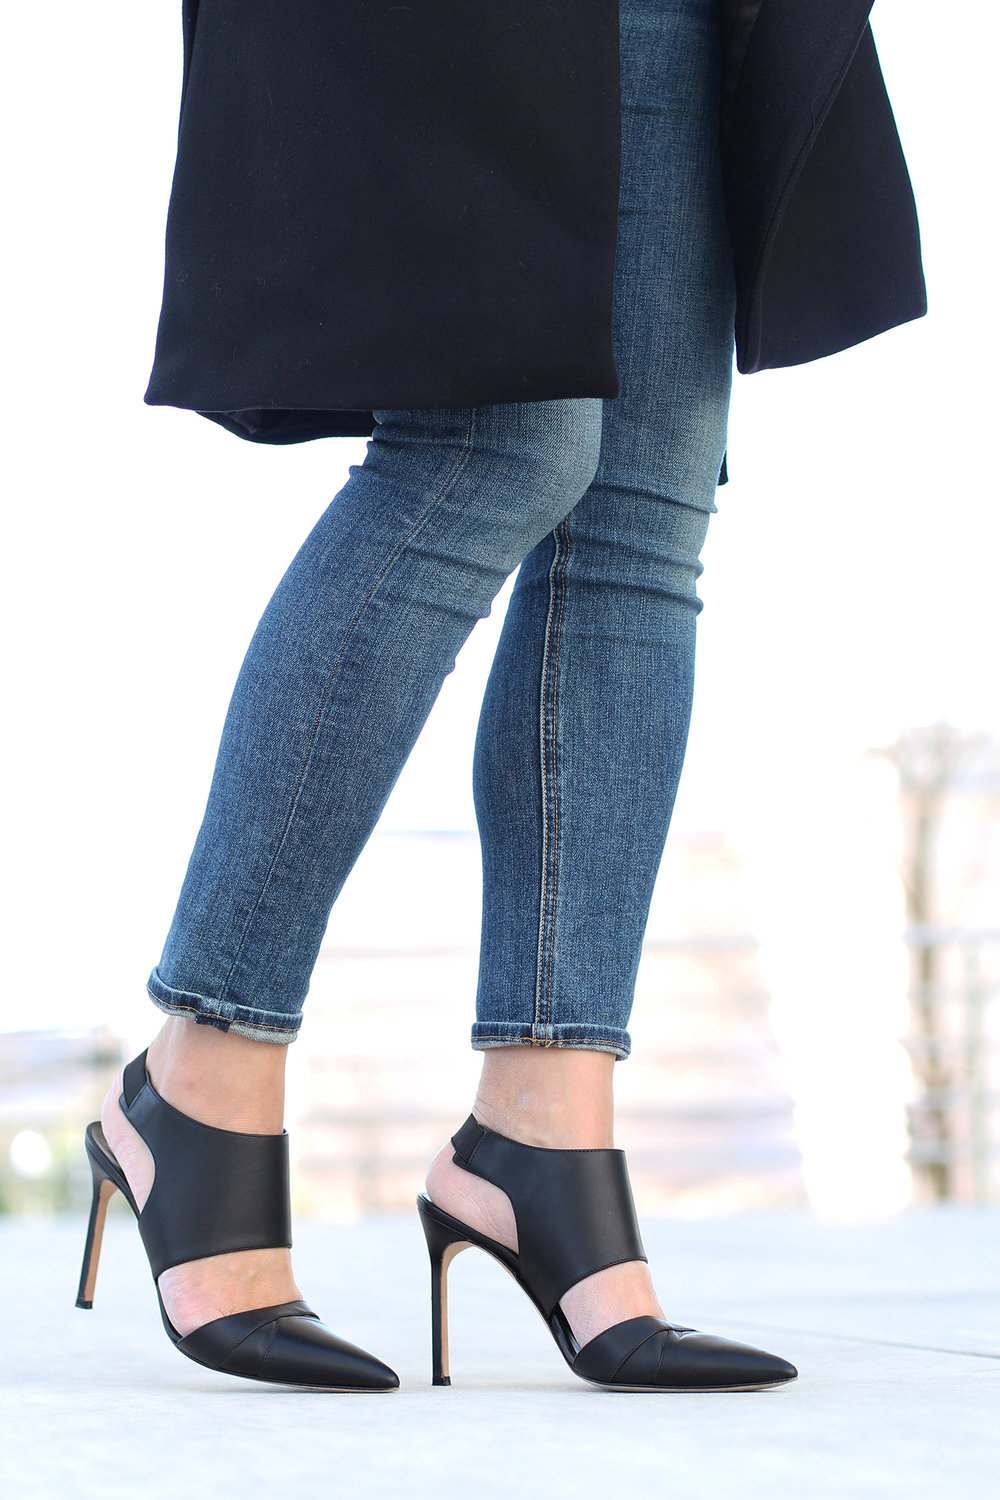 Manolo Blahnik Pumps